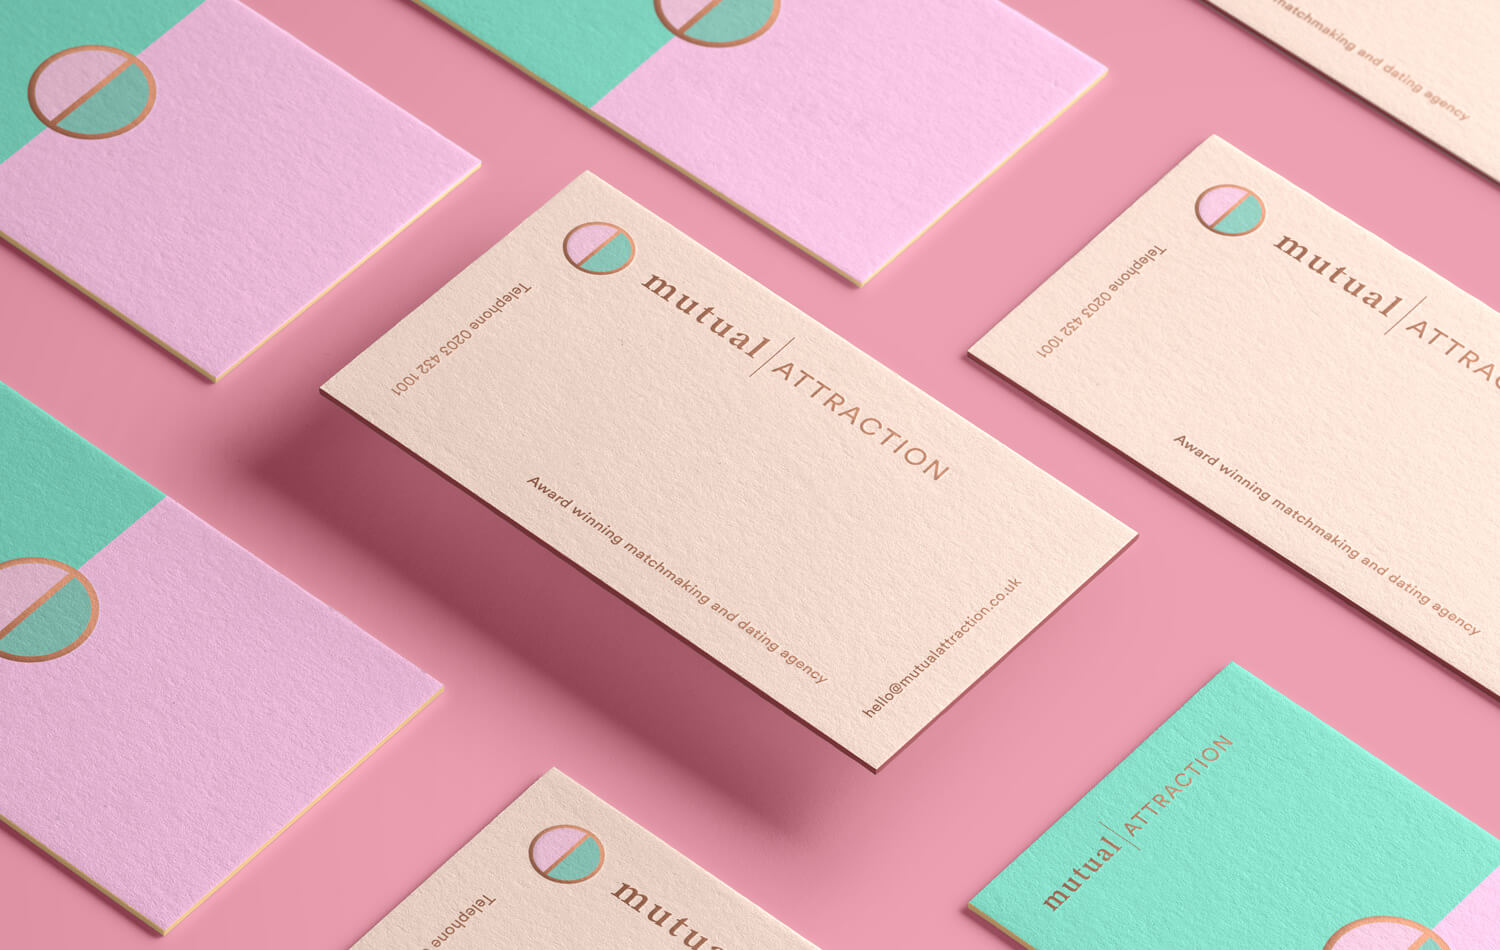 Mutual Attraction - dating agency brand refresh